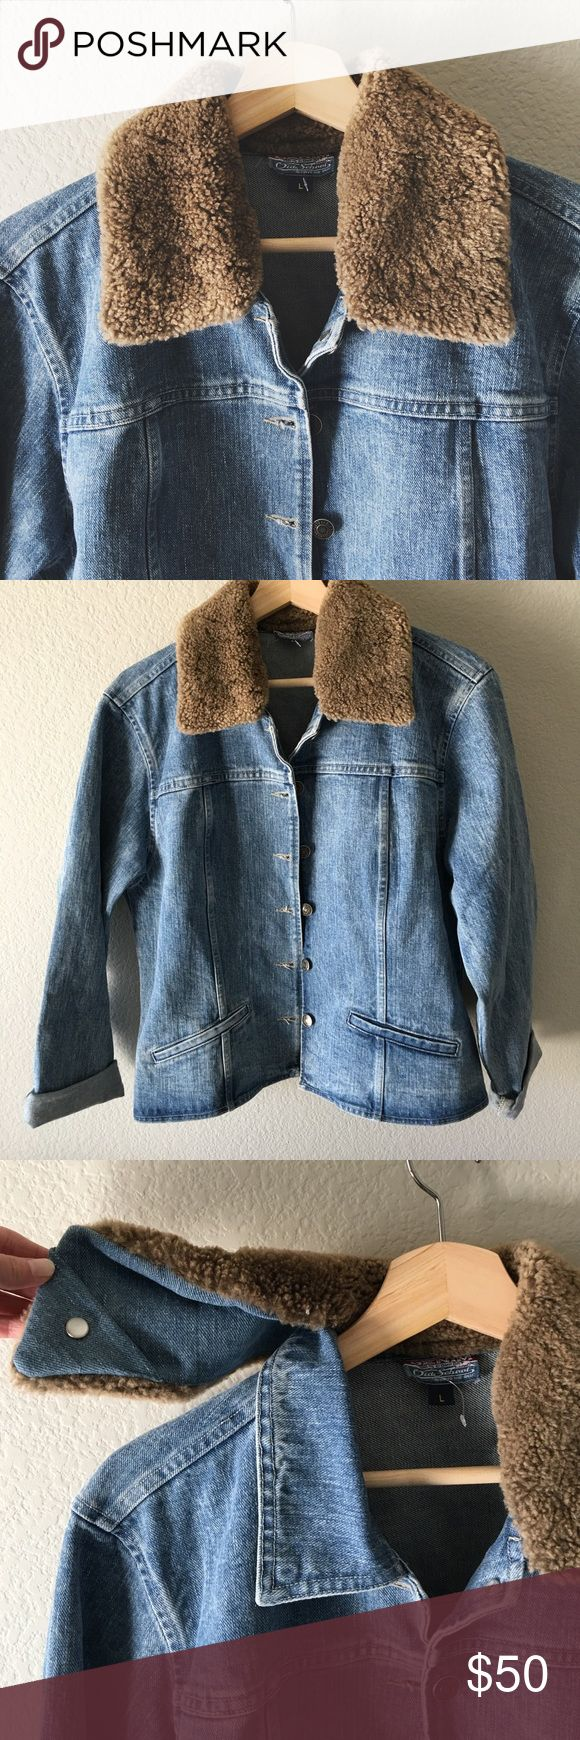 🎉Host Pick🎉NWOT Denim Old School Jean Jacket Never been worn; brand new without tags. Removable lamb skin collar. 100% cotton. Denim Old School Jackets & Coats Jean Jackets